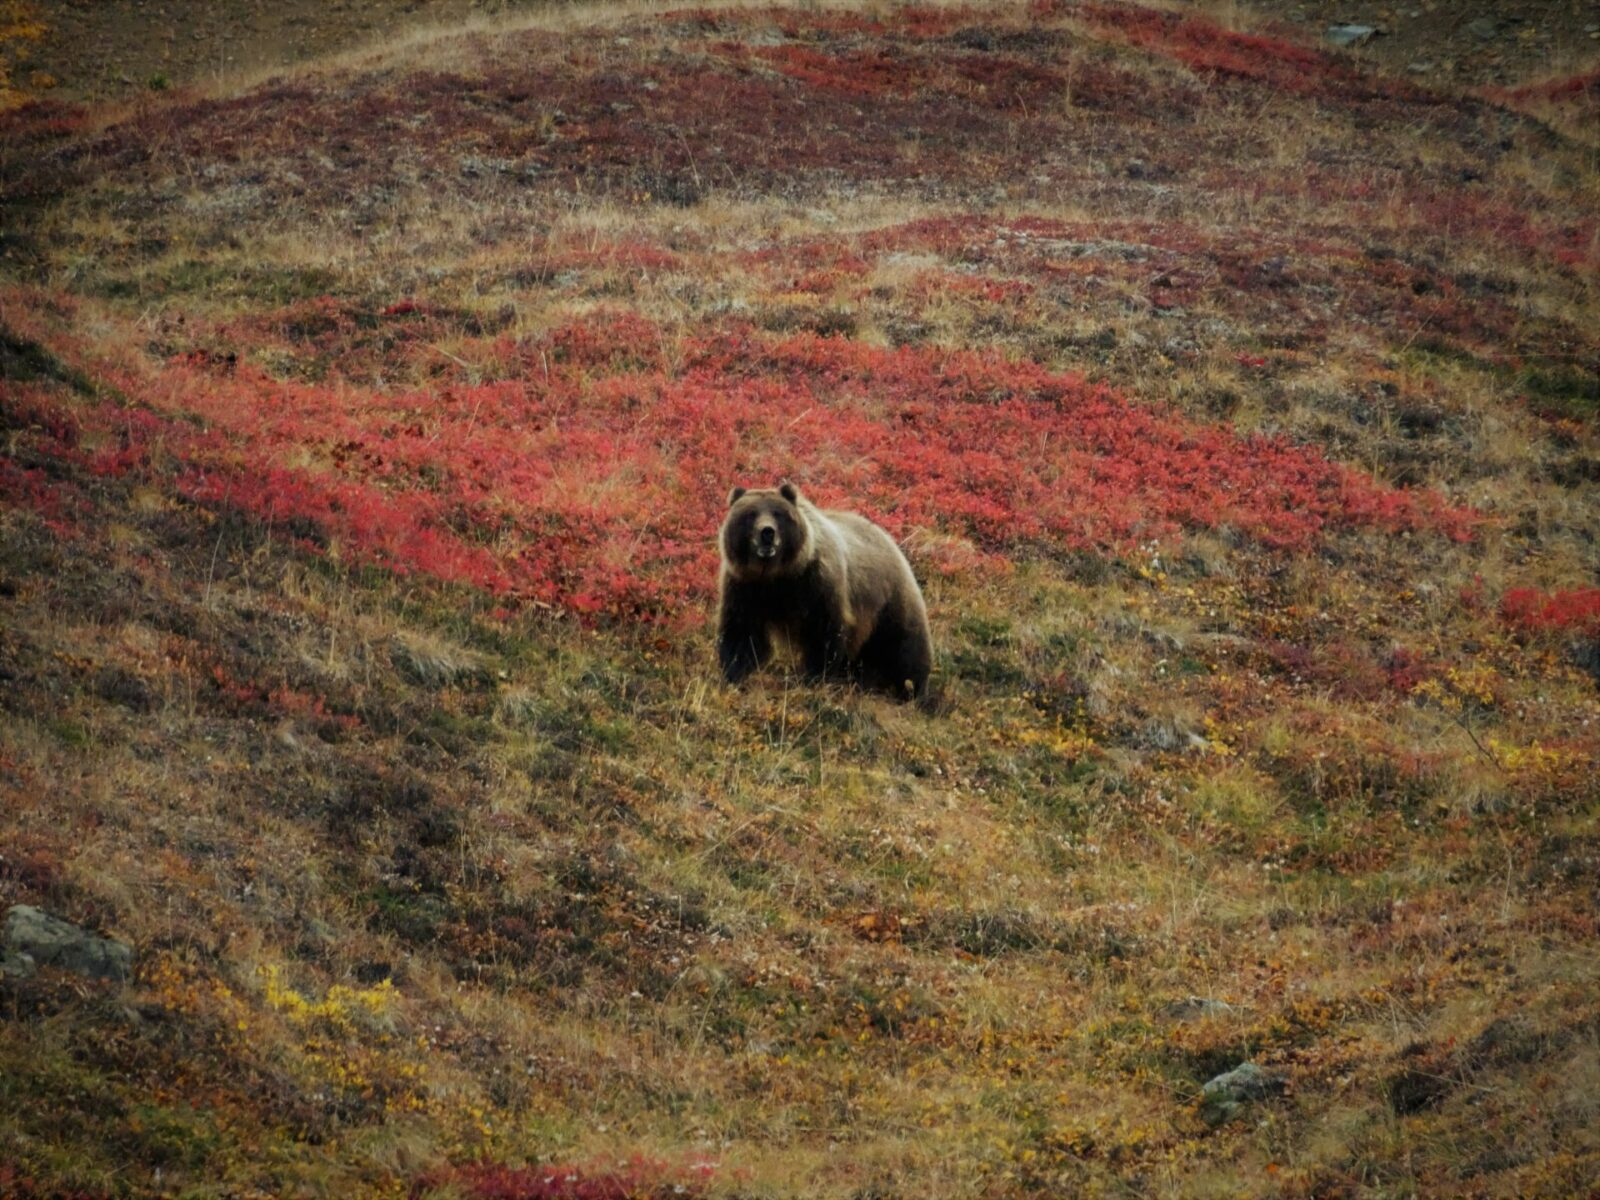 A grizzly bear is looking towards the camera. The bear is in a tundra with bright red fall colors on berry bushes